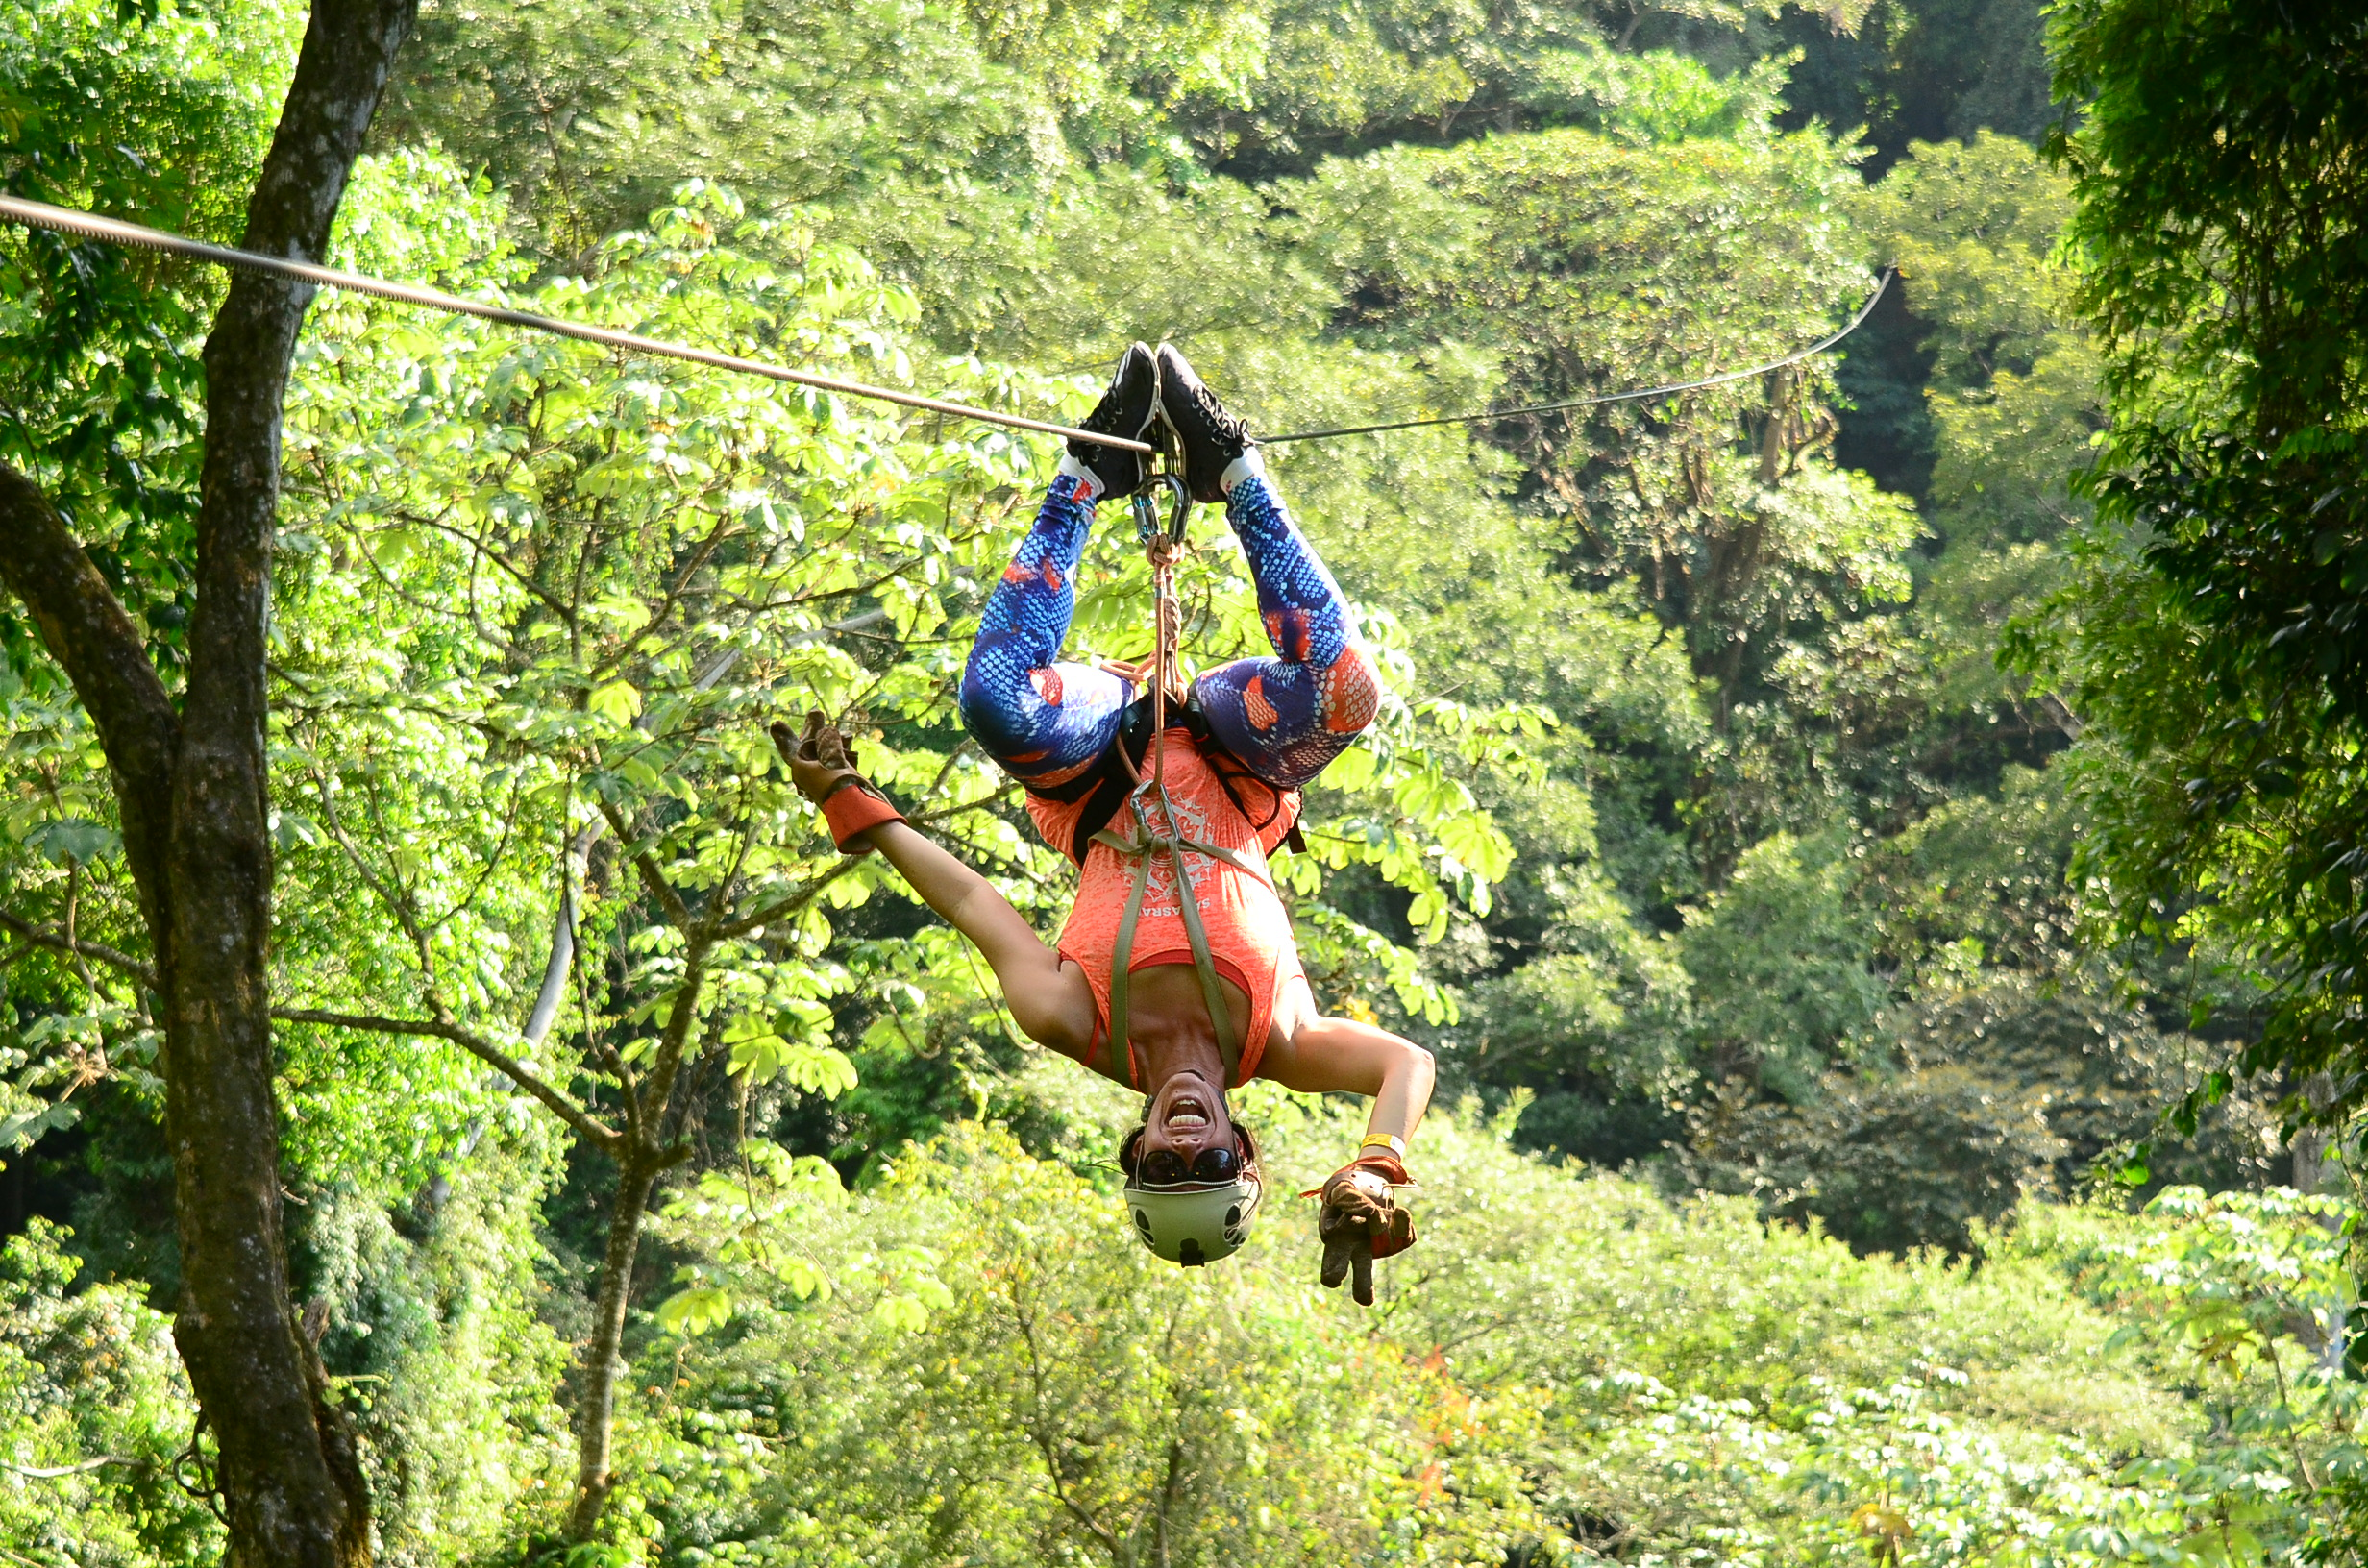 Canopy Tour - Fly through the jungle